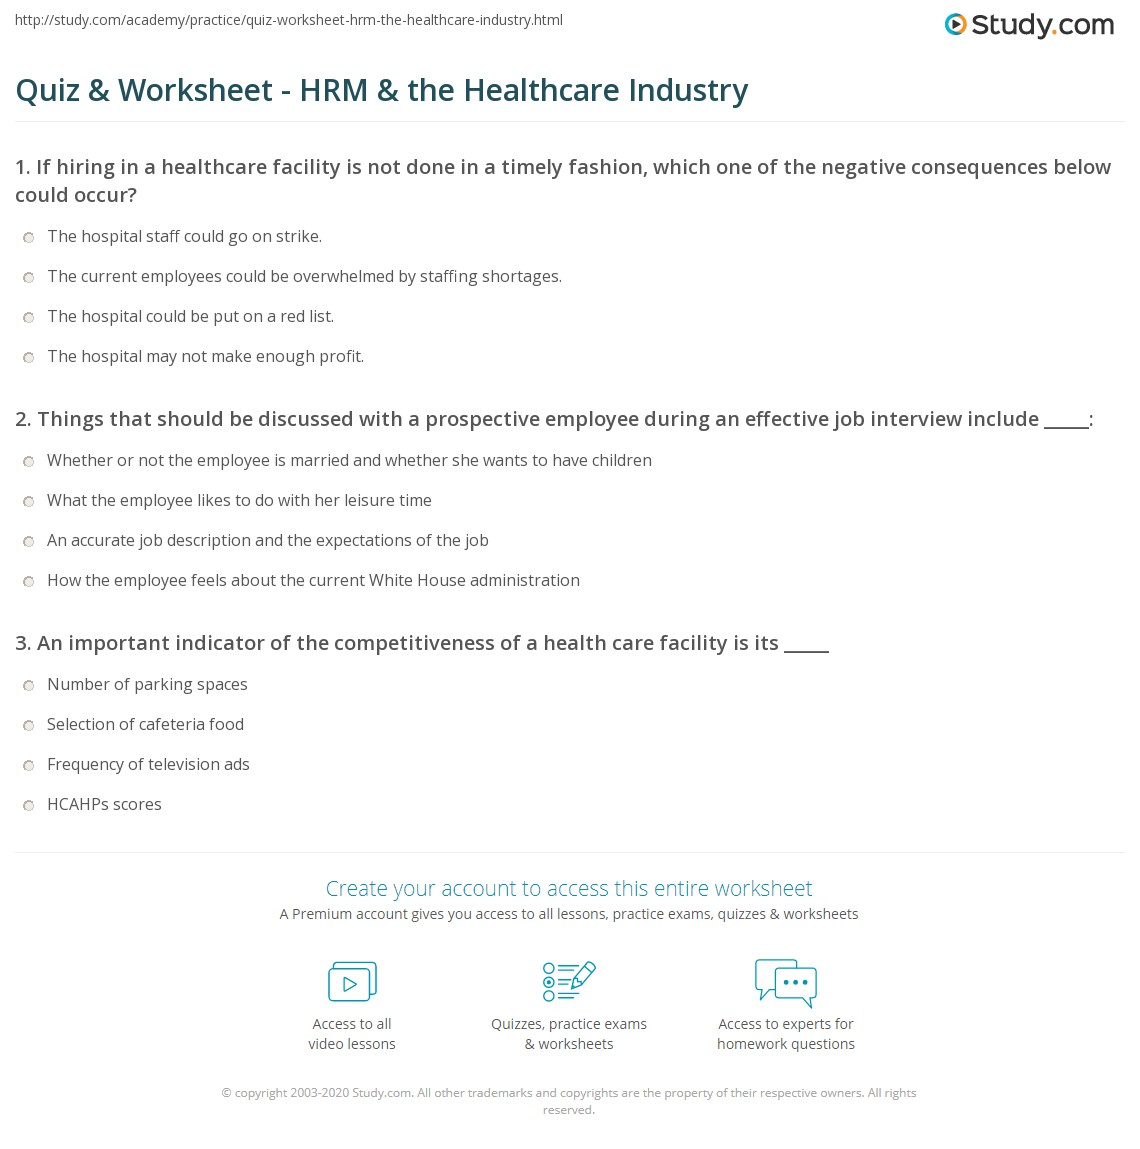 Quiz & Worksheet - HRM & the Healthcare Industry | Study com